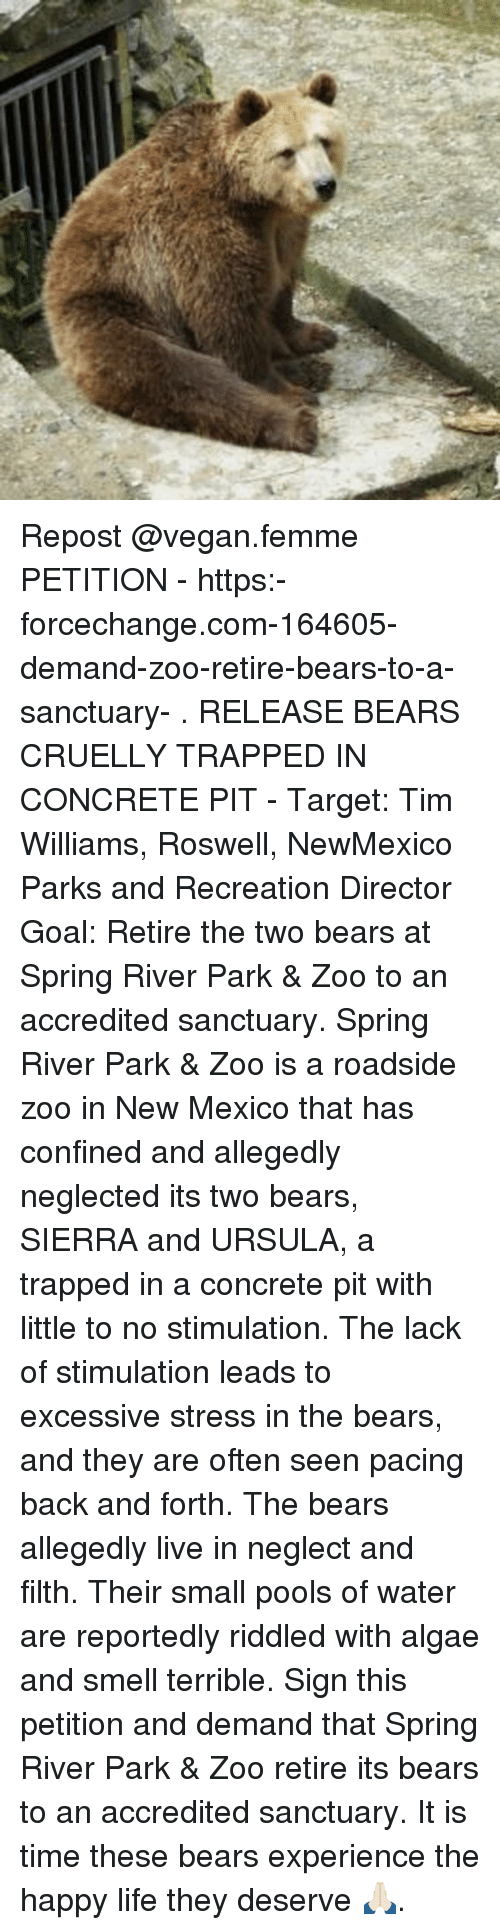 park and recreation: Repost @vegan.femme ・・・ PETITION - https:-forcechange.com-164605-demand-zoo-retire-bears-to-a-sanctuary- . RELEASE BEARS CRUELLY TRAPPED IN CONCRETE PIT - Target: Tim Williams, Roswell, NewMexico Parks and Recreation Director Goal: Retire the two bears at Spring River Park & Zoo to an accredited sanctuary. Spring River Park & Zoo is a roadside zoo in New Mexico that has confined and allegedly neglected its two bears, SIERRA and URSULA, a trapped in a concrete pit with little to no stimulation. The lack of stimulation leads to excessive stress in the bears, and they are often seen pacing back and forth. The bears allegedly live in neglect and filth. Their small pools of water are reportedly riddled with algae and smell terrible. Sign this petition and demand that Spring River Park & Zoo retire its bears to an accredited sanctuary. It is time these bears experience the happy life they deserve 🙏🏻.